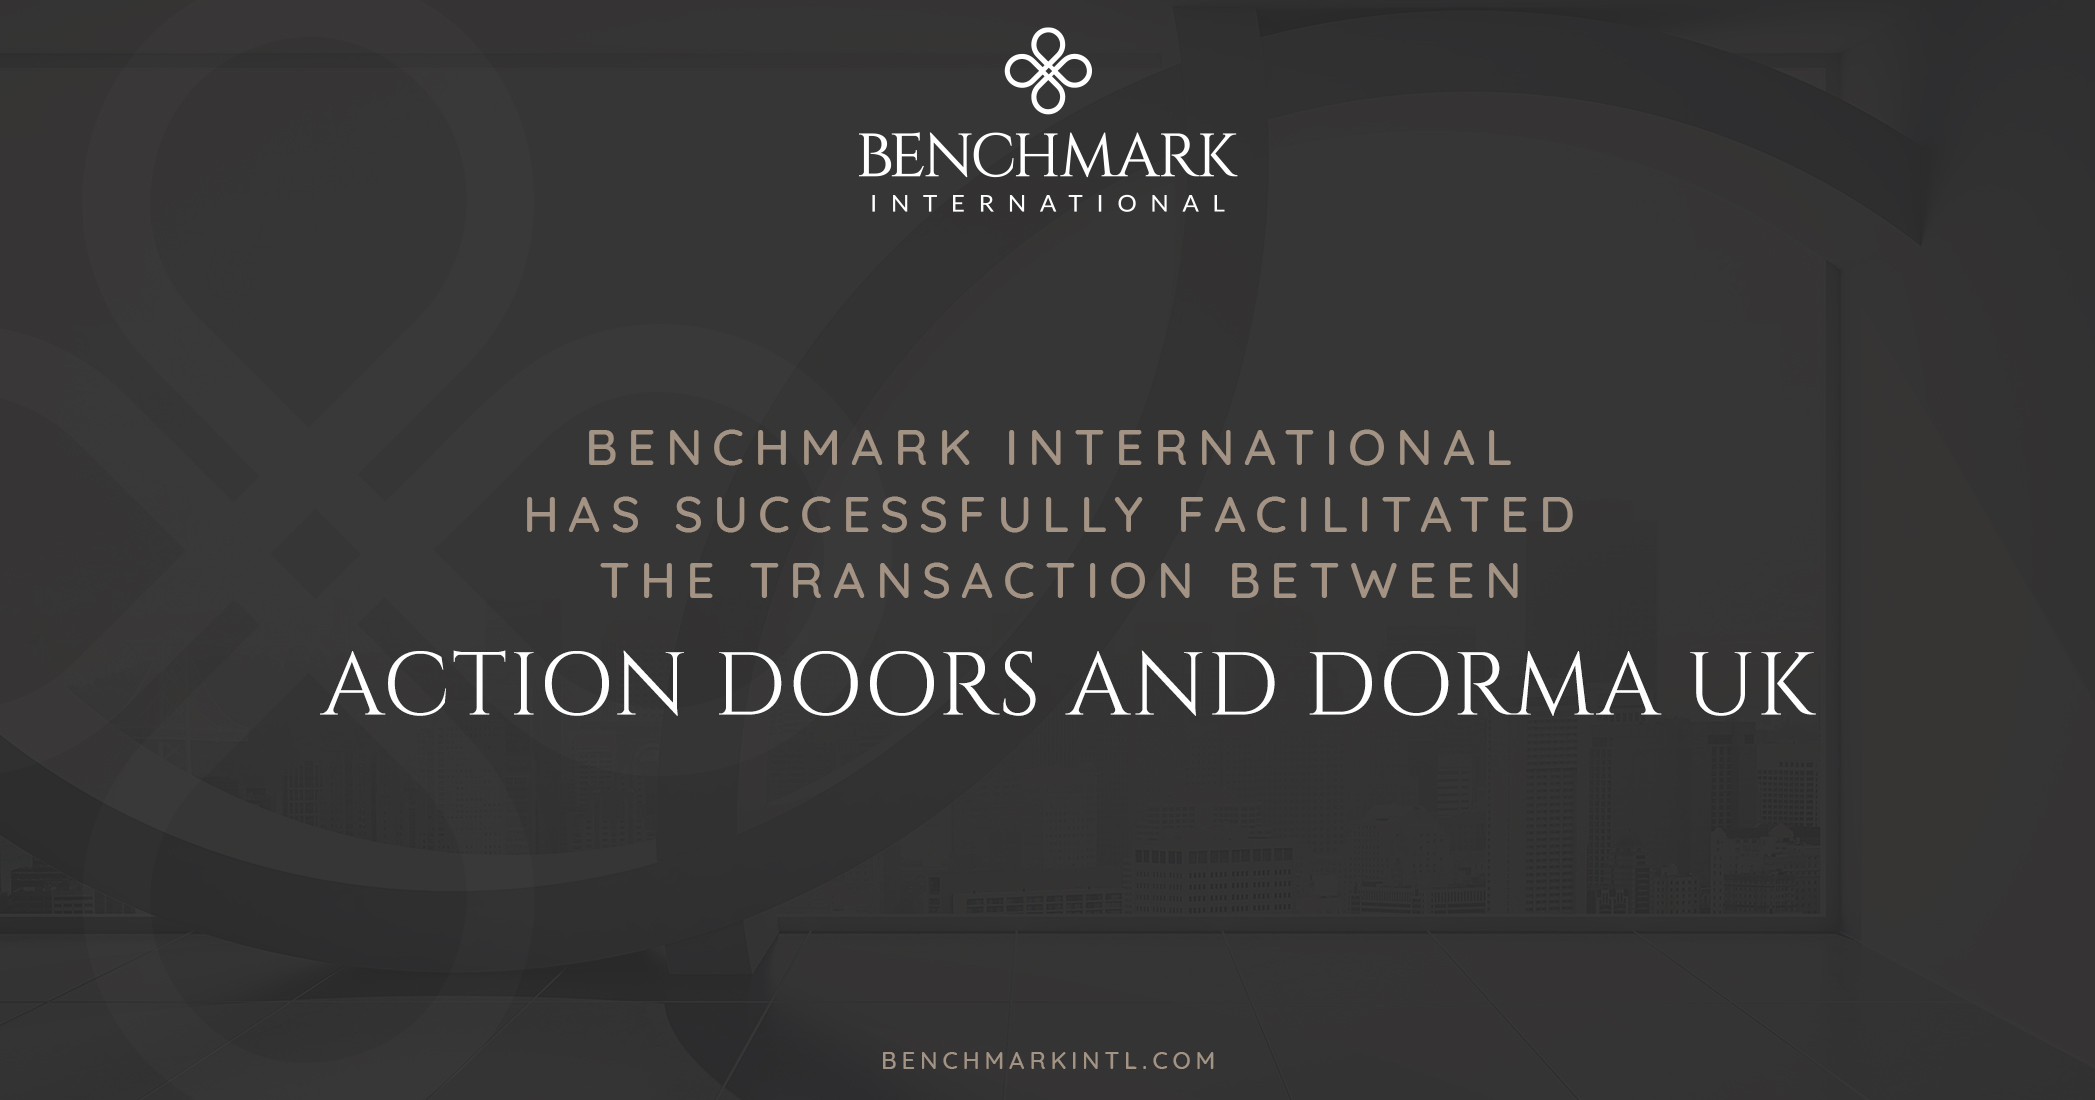 Benchmark International has Successfully Facilitated the Transaction Between Action Doors and Dorma UK